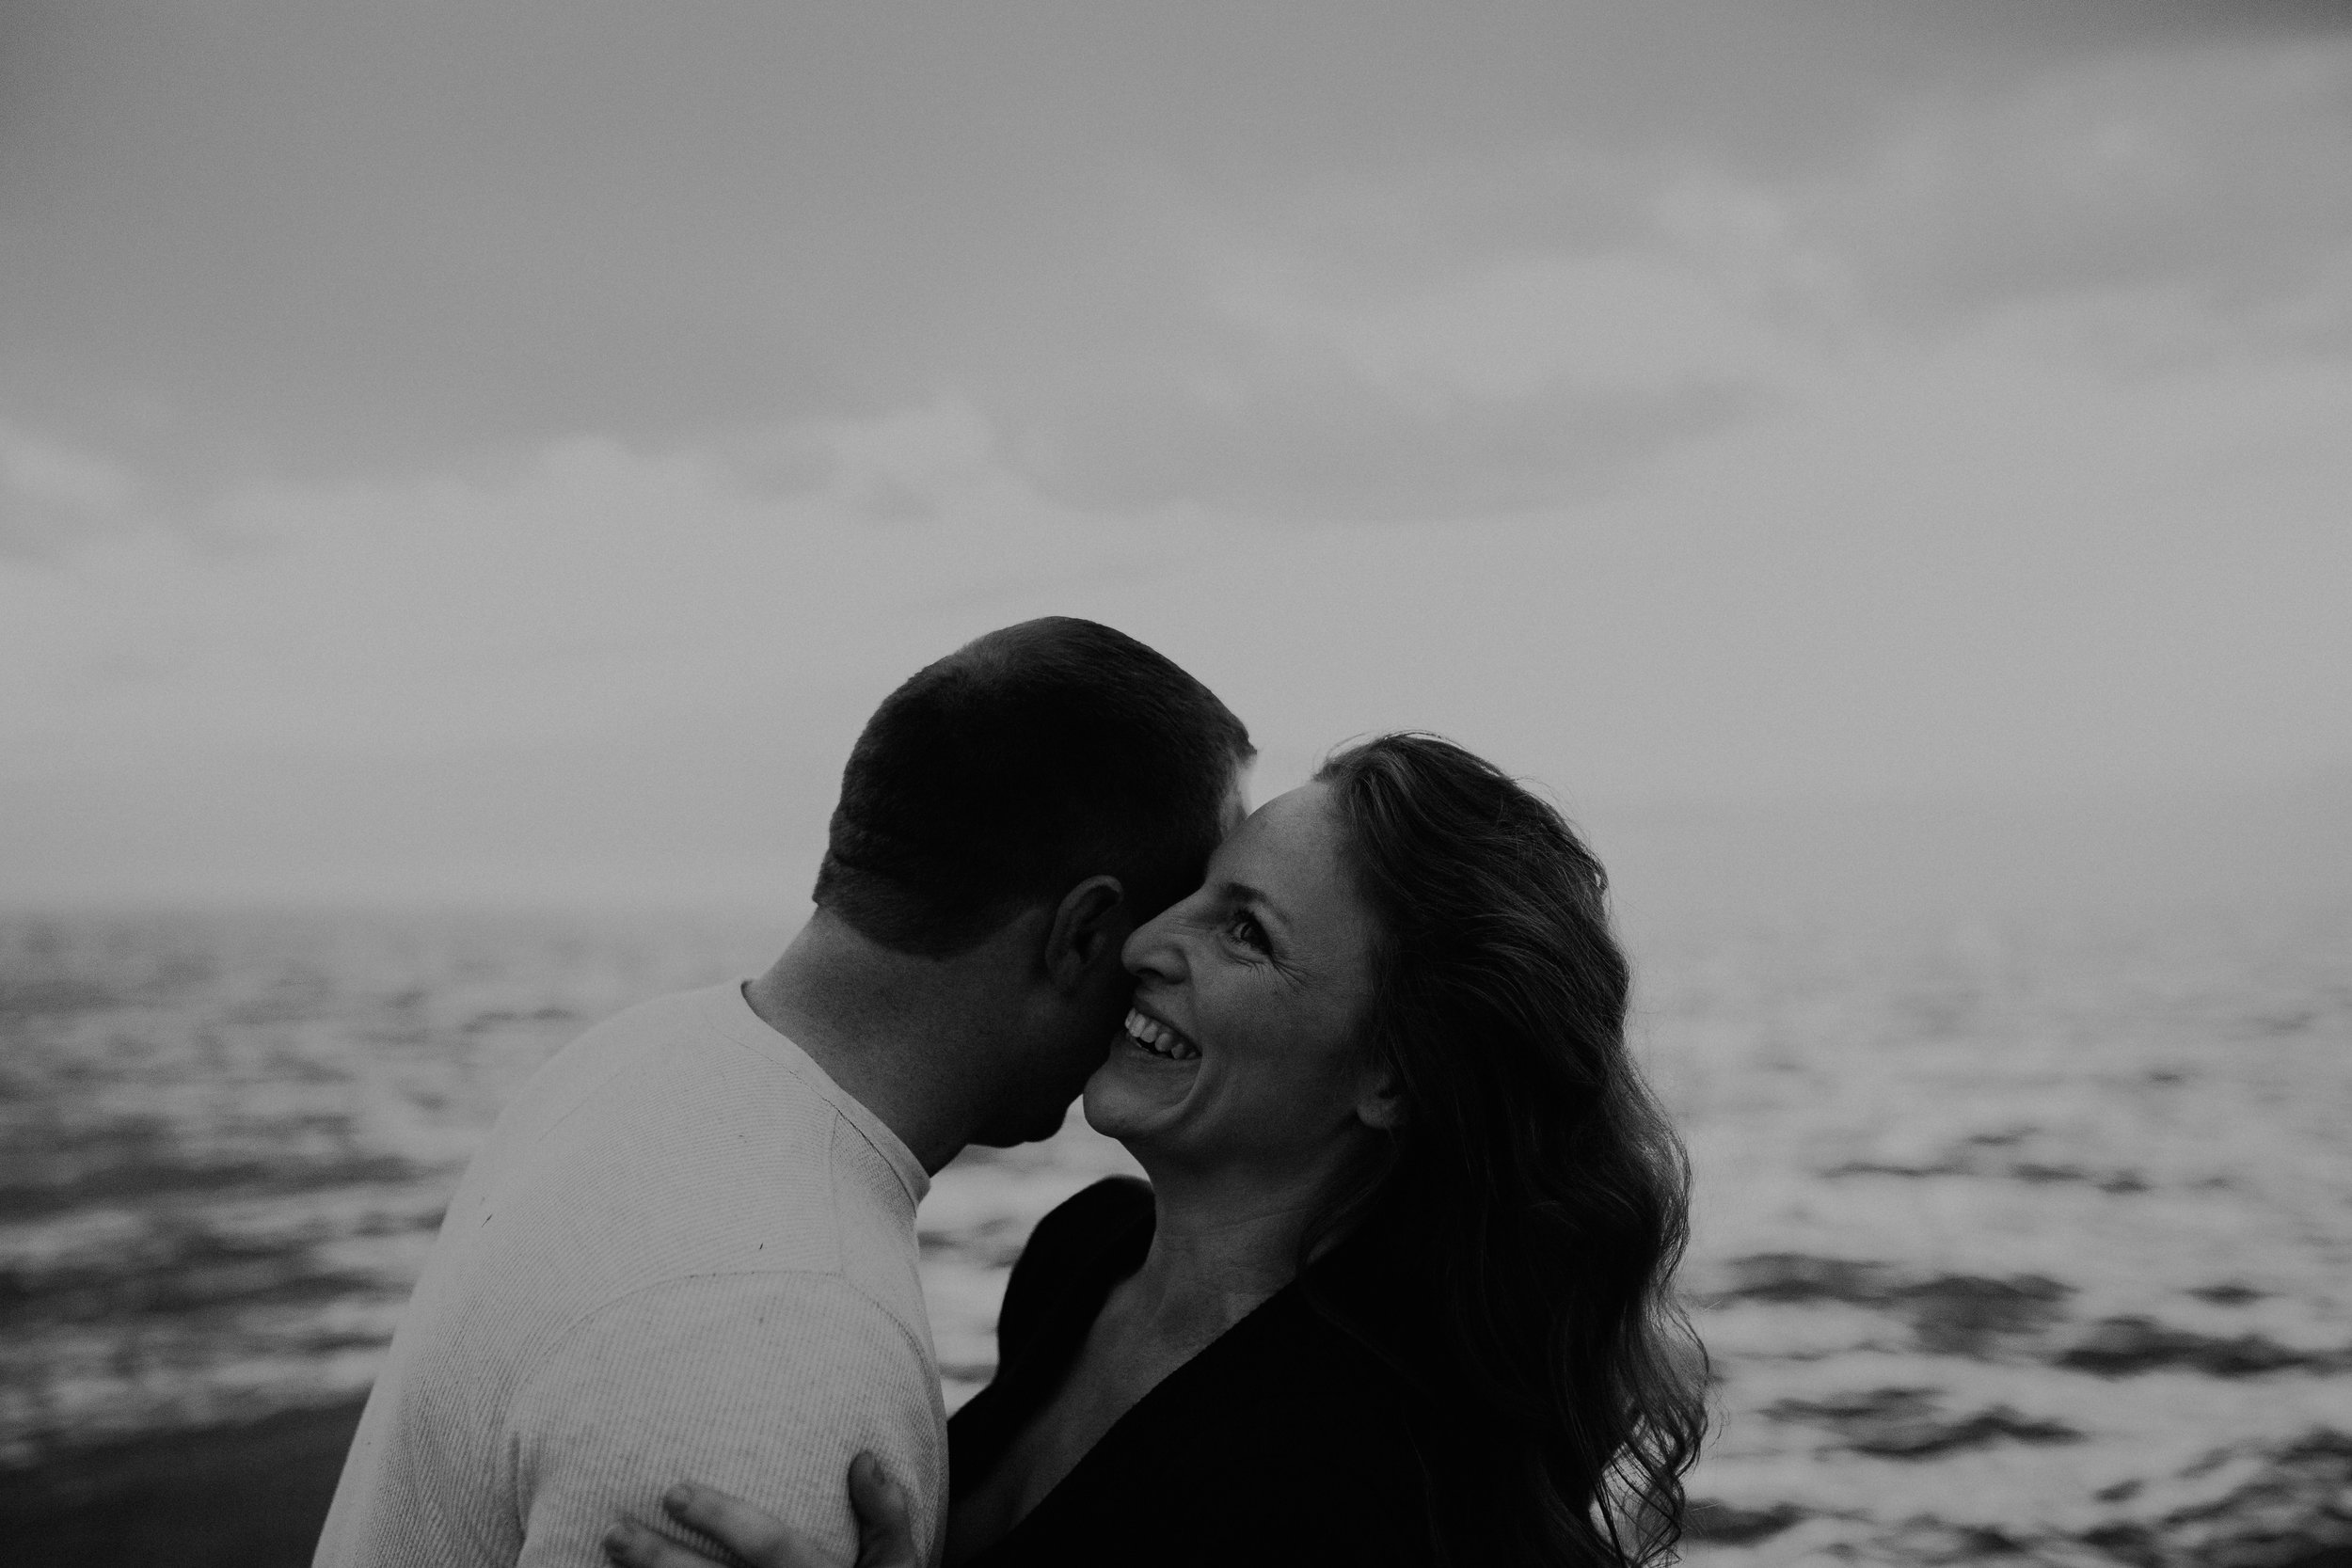 Montrose_Beach_Chicago_Engagement_Session-EDIT-41.JPG